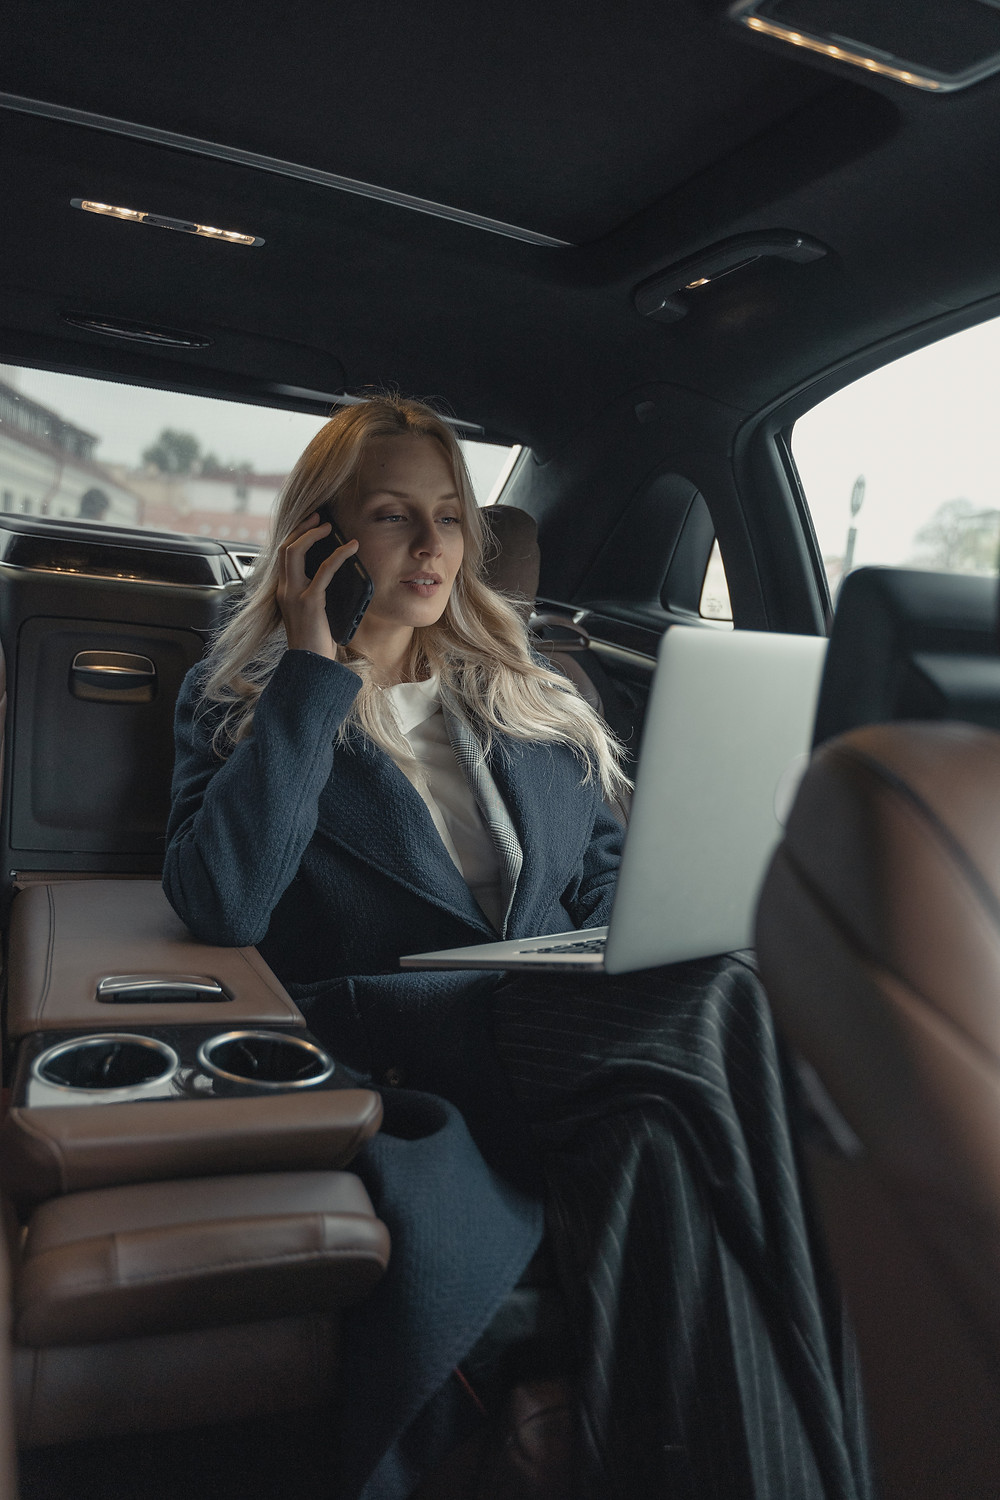 A woman takes a call while on her laptop in a car ride